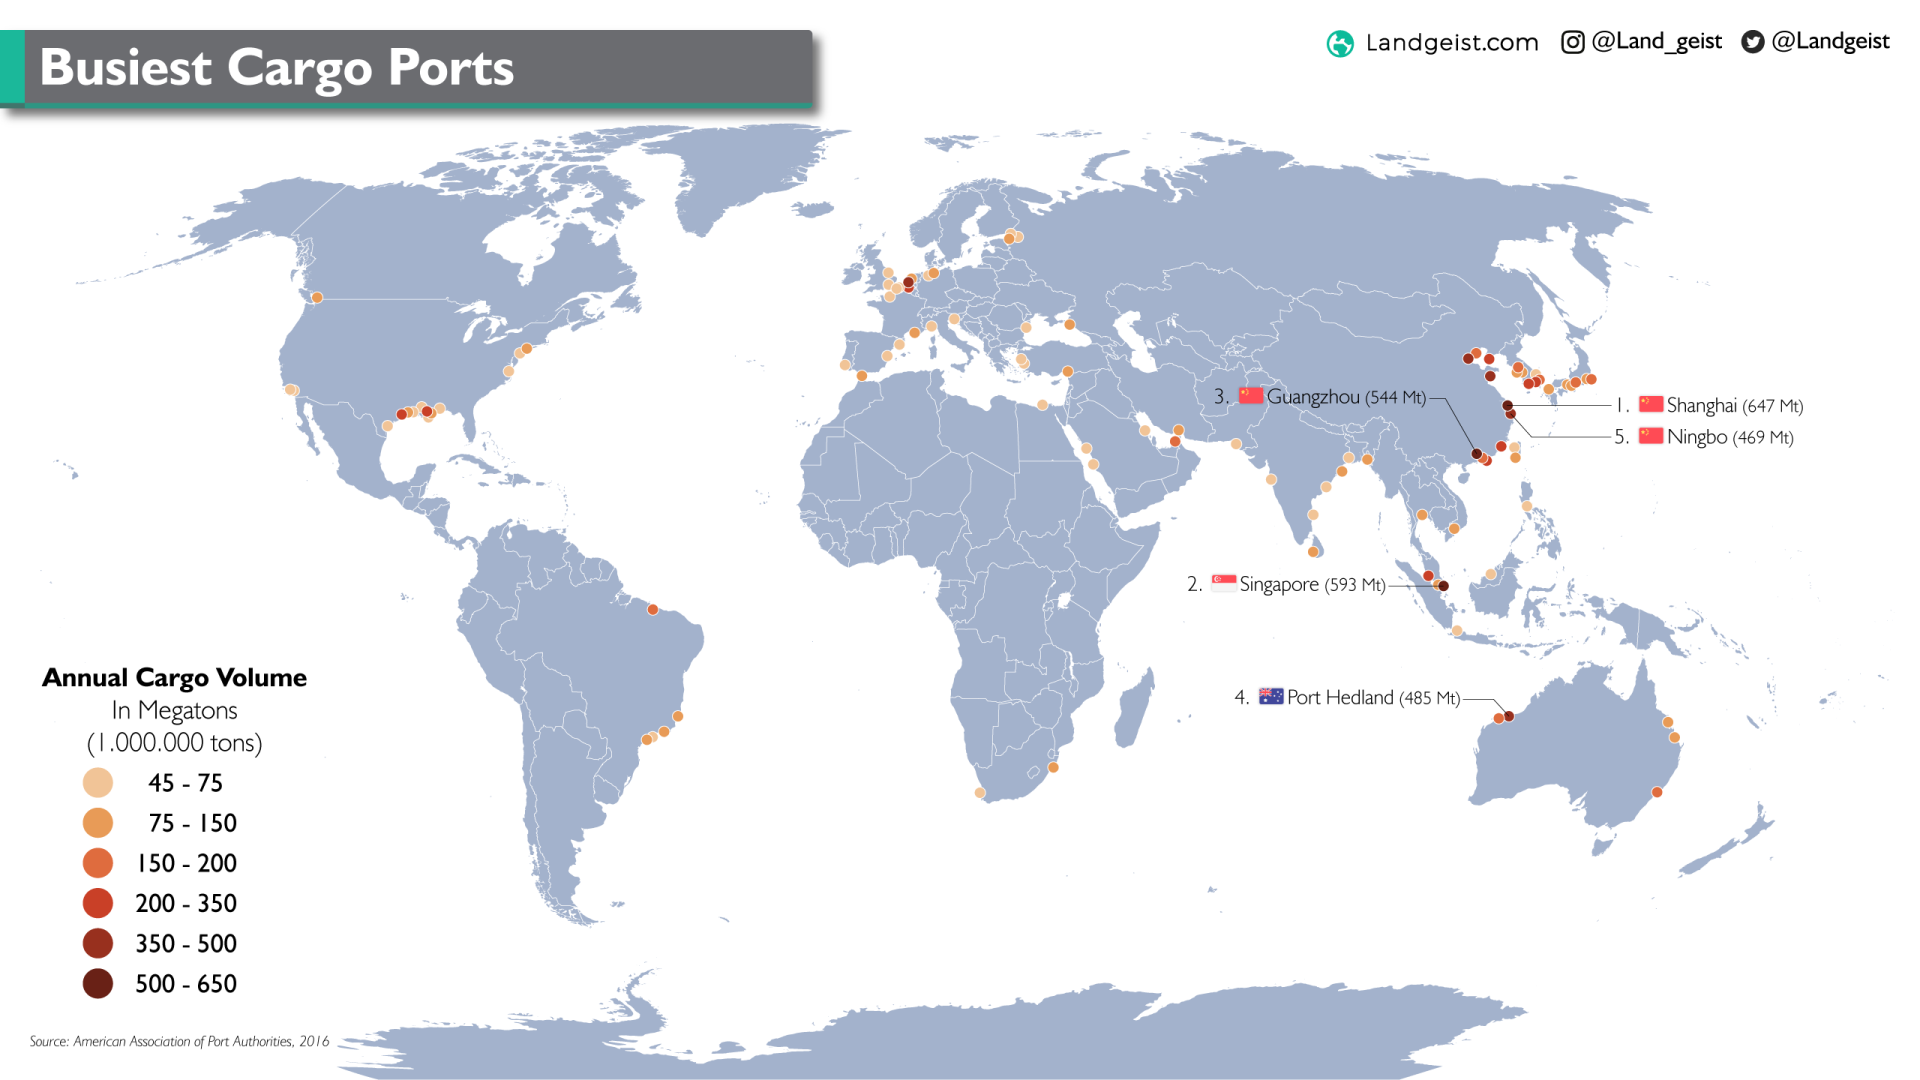 Map of the busiest cargo ports in the world